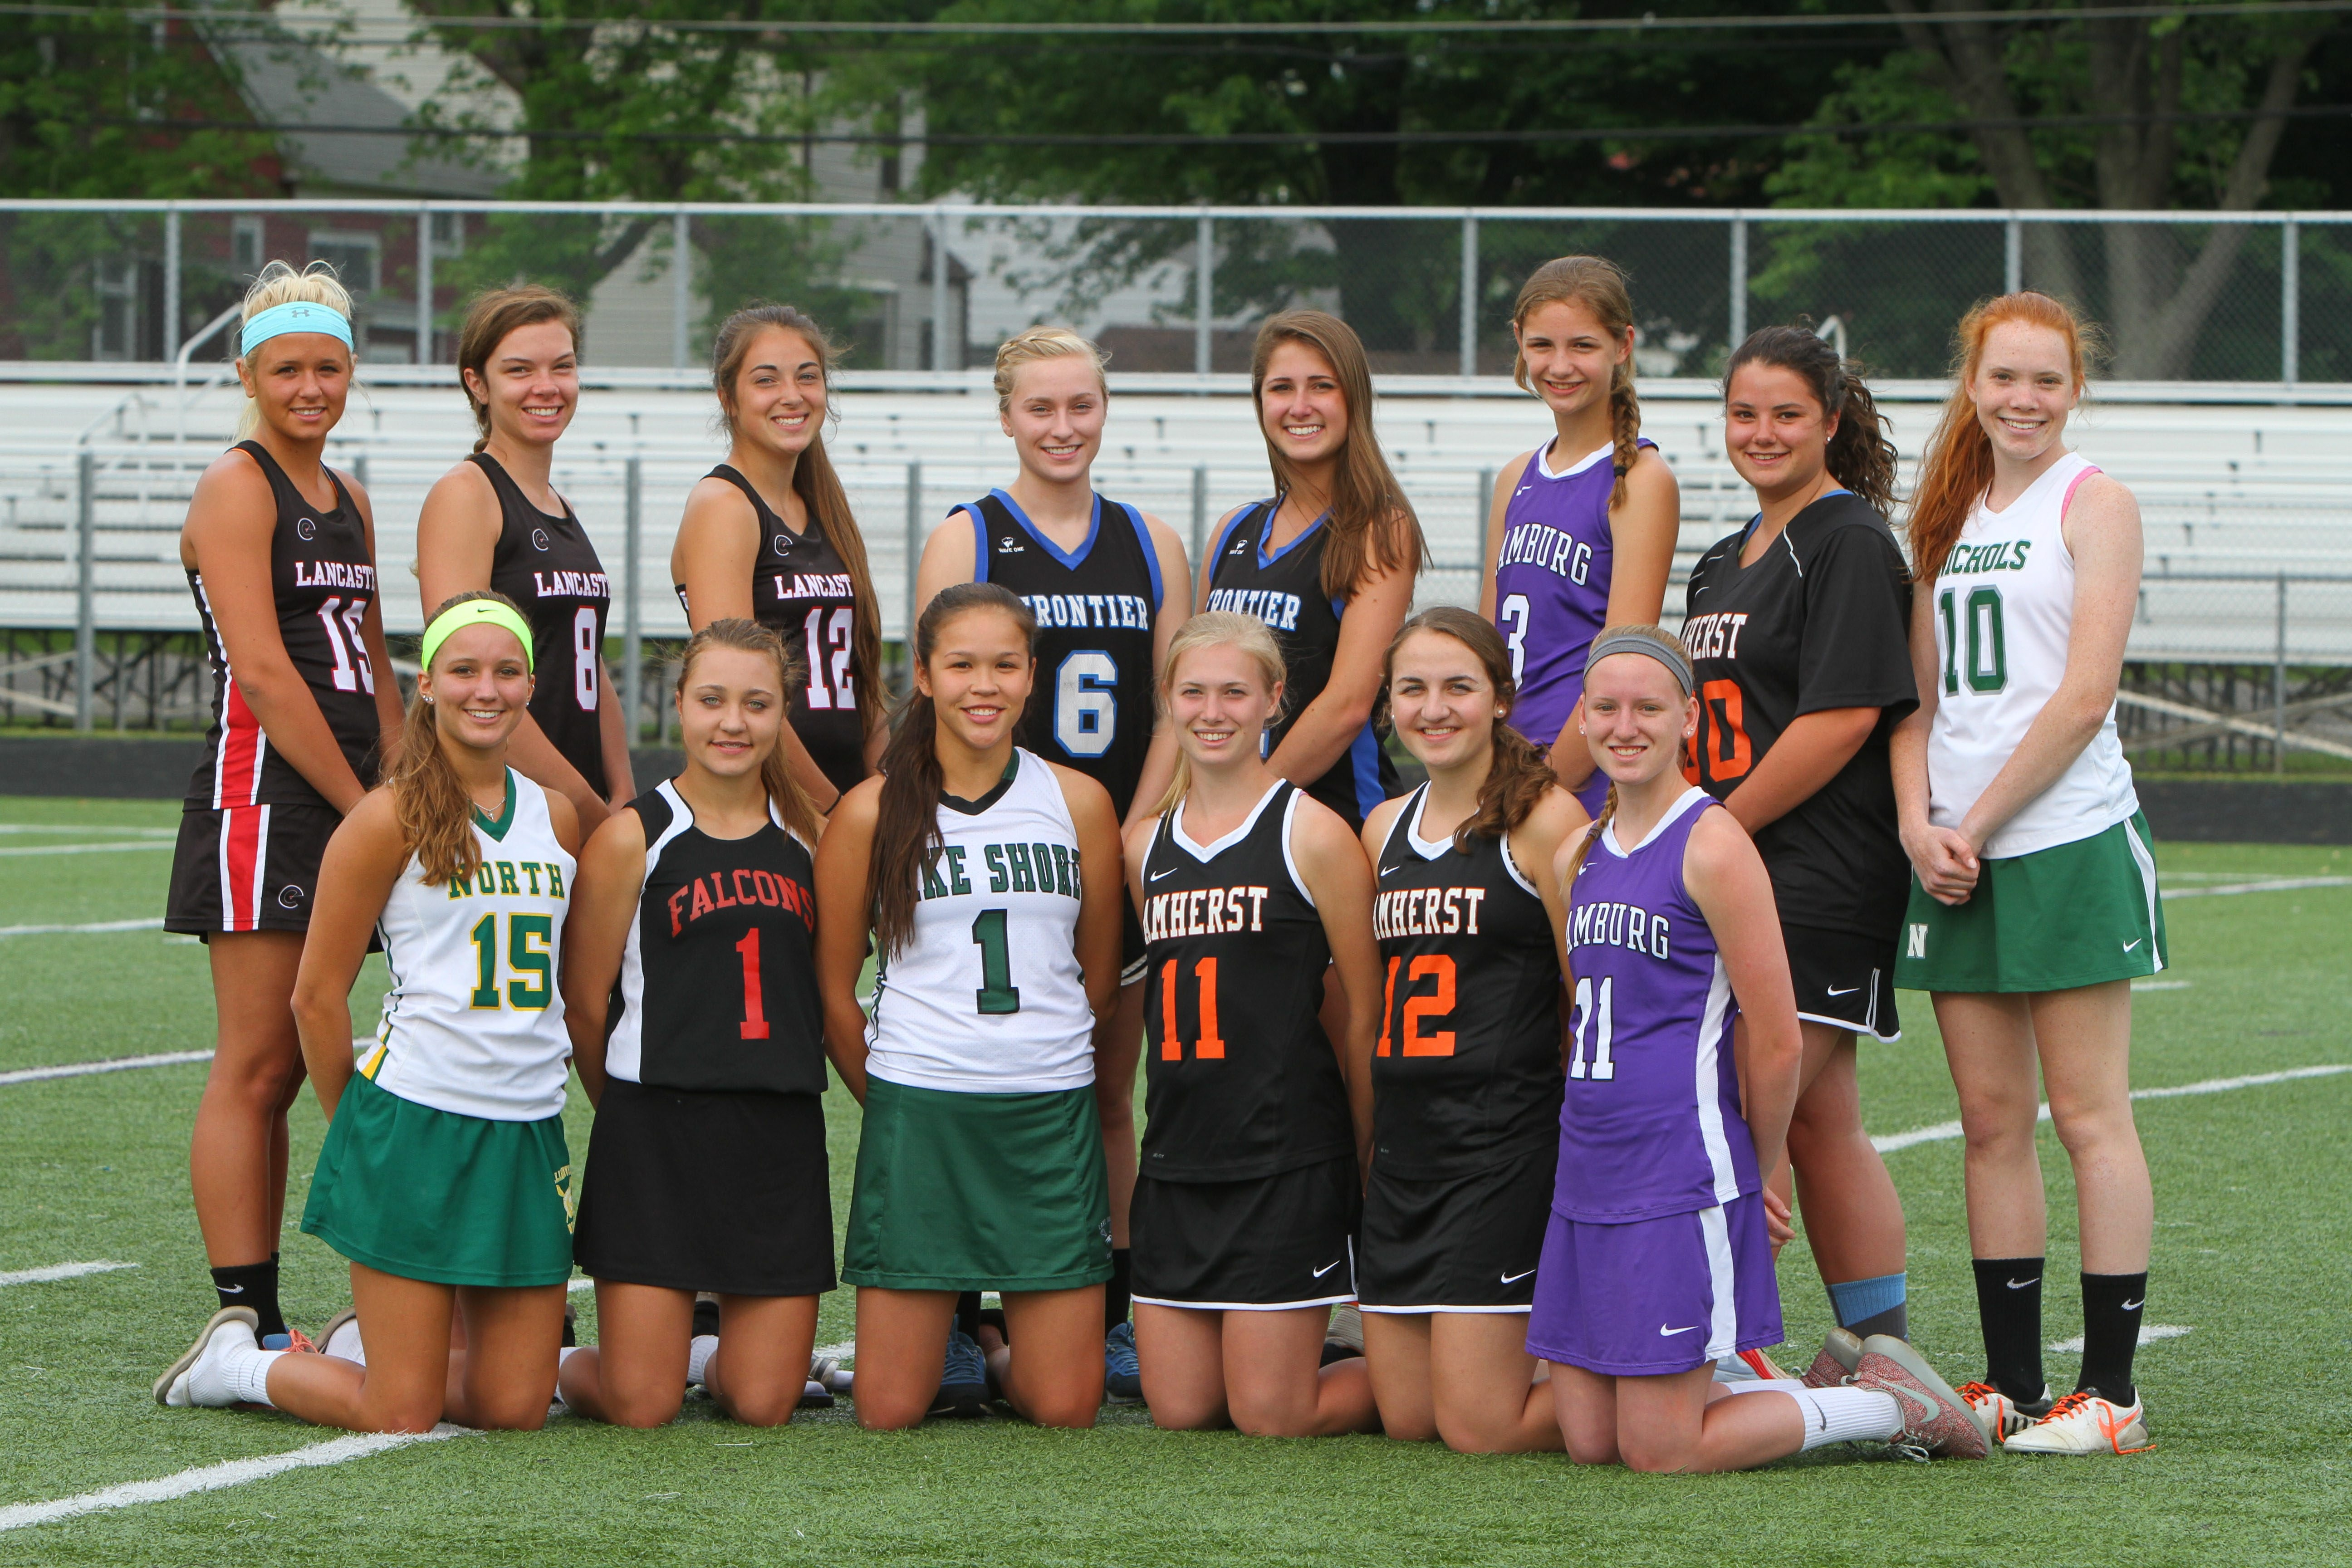 All-WNY girls lacrosse: Back row, left to right – Allie Stewart (Lancaster), Grace Gabriel (Lancaster), MacKenzie Neary (Lancaster), Hannah Lease (Frontier), Taylor Izzo (Frontier), Claire Herrmann (Hamburg), Emily Bitka (Amherst) and Jenny Roach (Nichols). Front row, left to right – Katie Wolfe (Williamsville North), Emma Falter (Niagara-Wheatfield), Alie Jimerson (Lake Shore), Kathryn Yoder (Amherst), Grace Lawson (Amherst), Jill Ford (Hamburg).